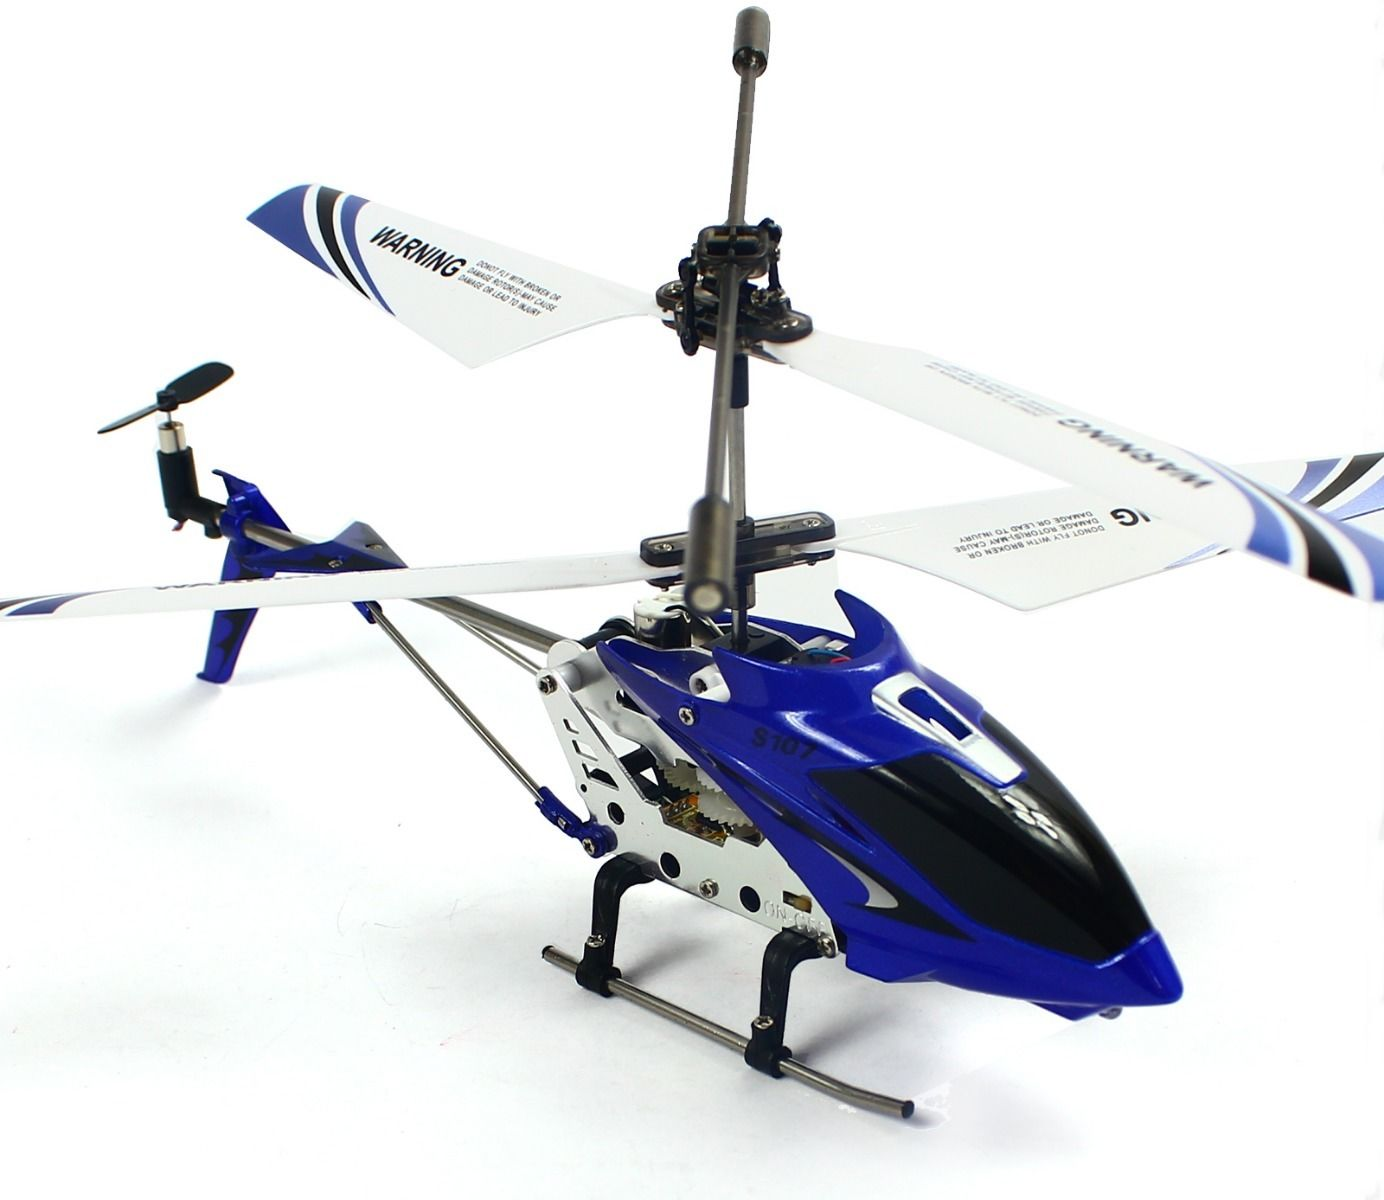 toy rc helicopters with 322074050886 on What Age Can Kids Start Using Quadcopters also Watch also 322074050886 in addition Rc27 as well Cobra.